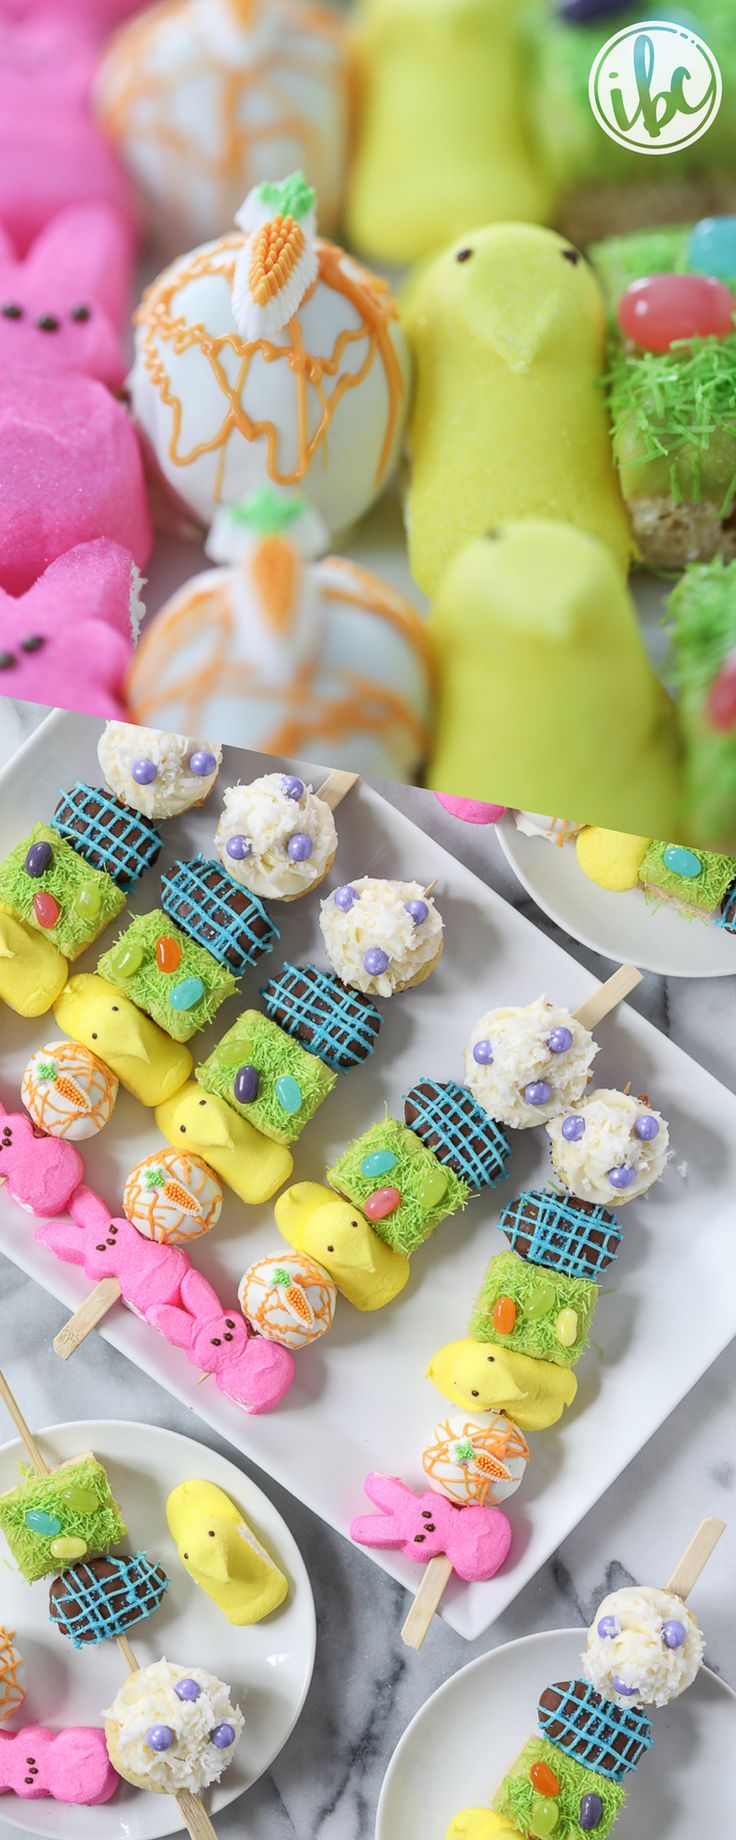 Easter Dessert Kabobs - spring dessert Easter recipe idea with marshmallow peeps, carrot cake, cupcakes and more! via Inspired by Charm